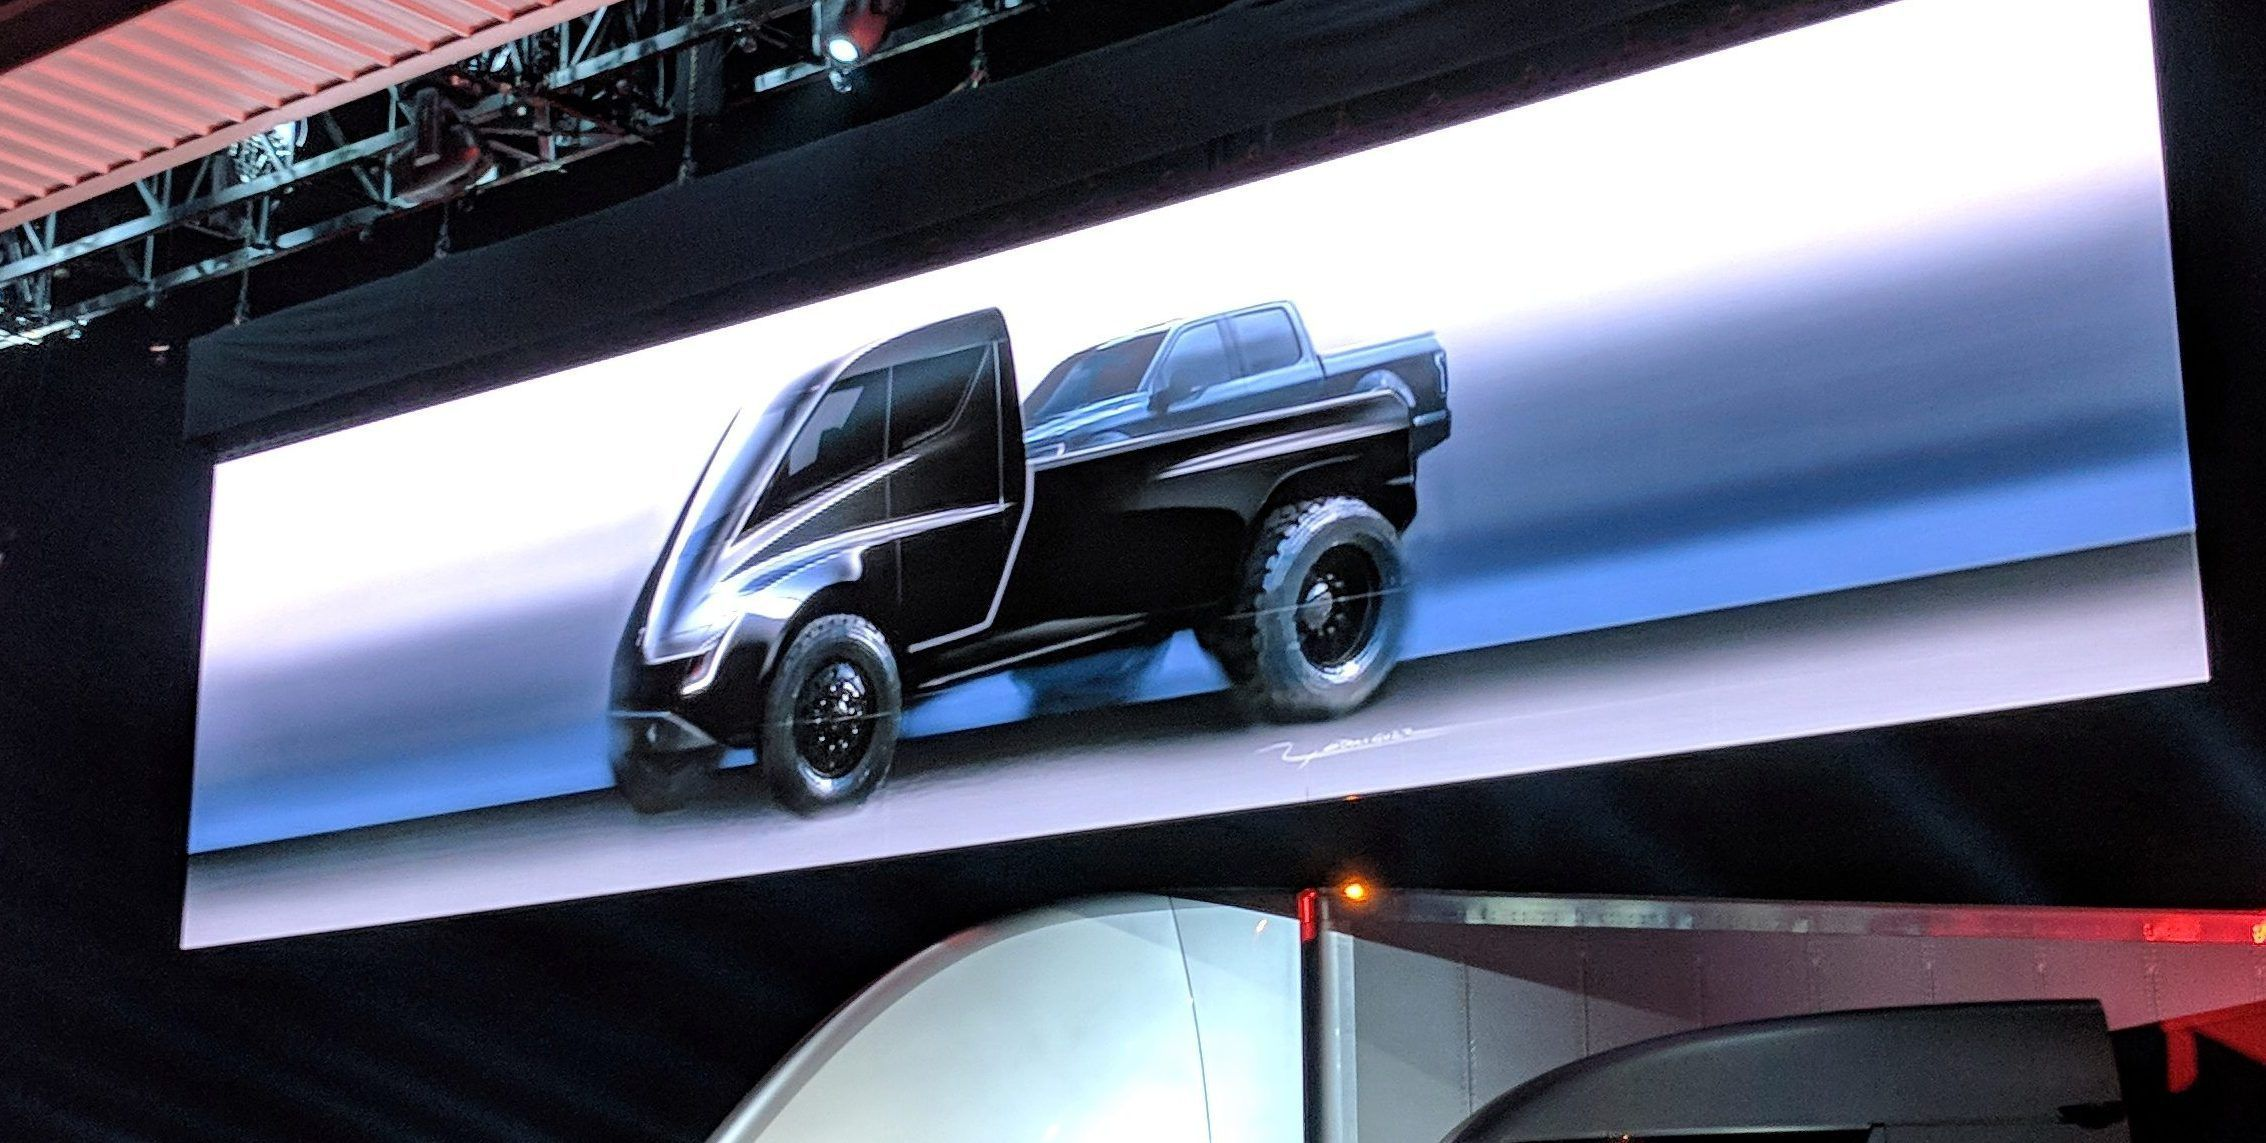 Tesla Pickup Truck Could Maybe Come Sooner Says Elon Musk As It Becomes His Favorite Upcoming Product Tesla Pickup Pickup Trucks Tesla Pickup Truck